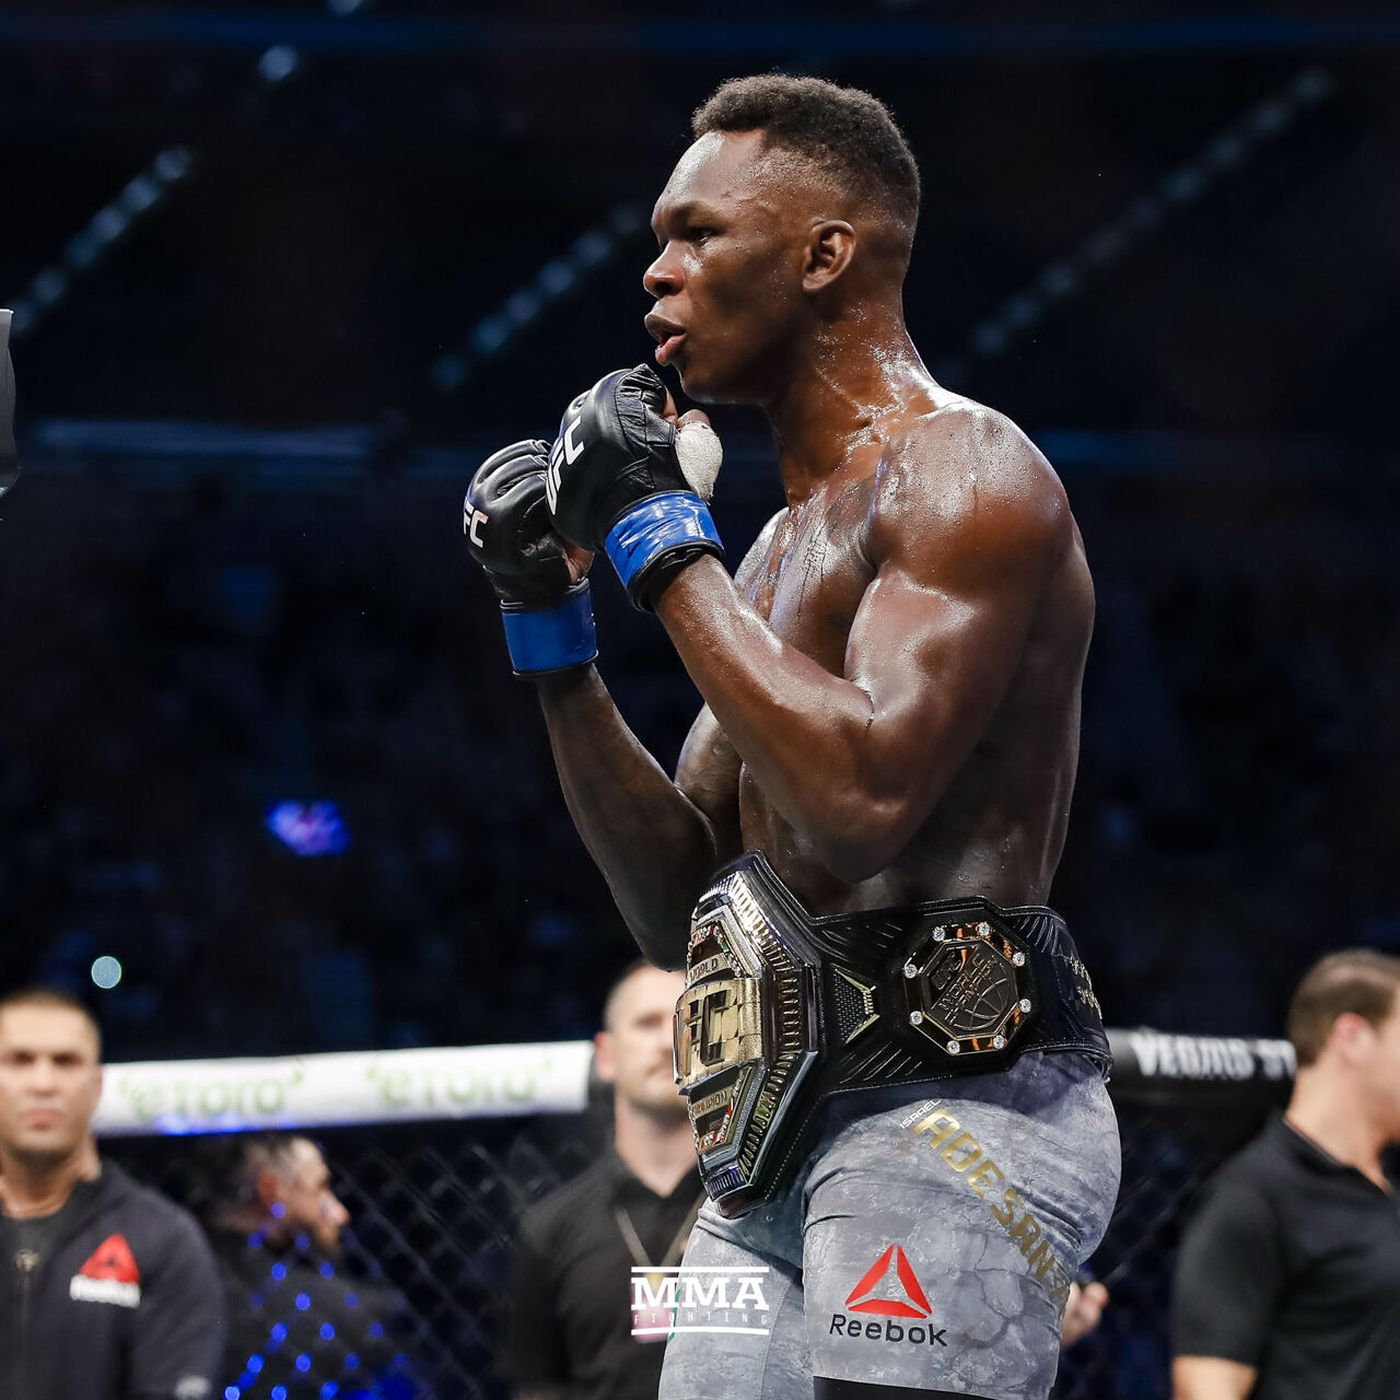 Israel Adesanya targets Yoel Romero next, wants to fight 'the guy everyone thinks can beat me' - MMA Fighting